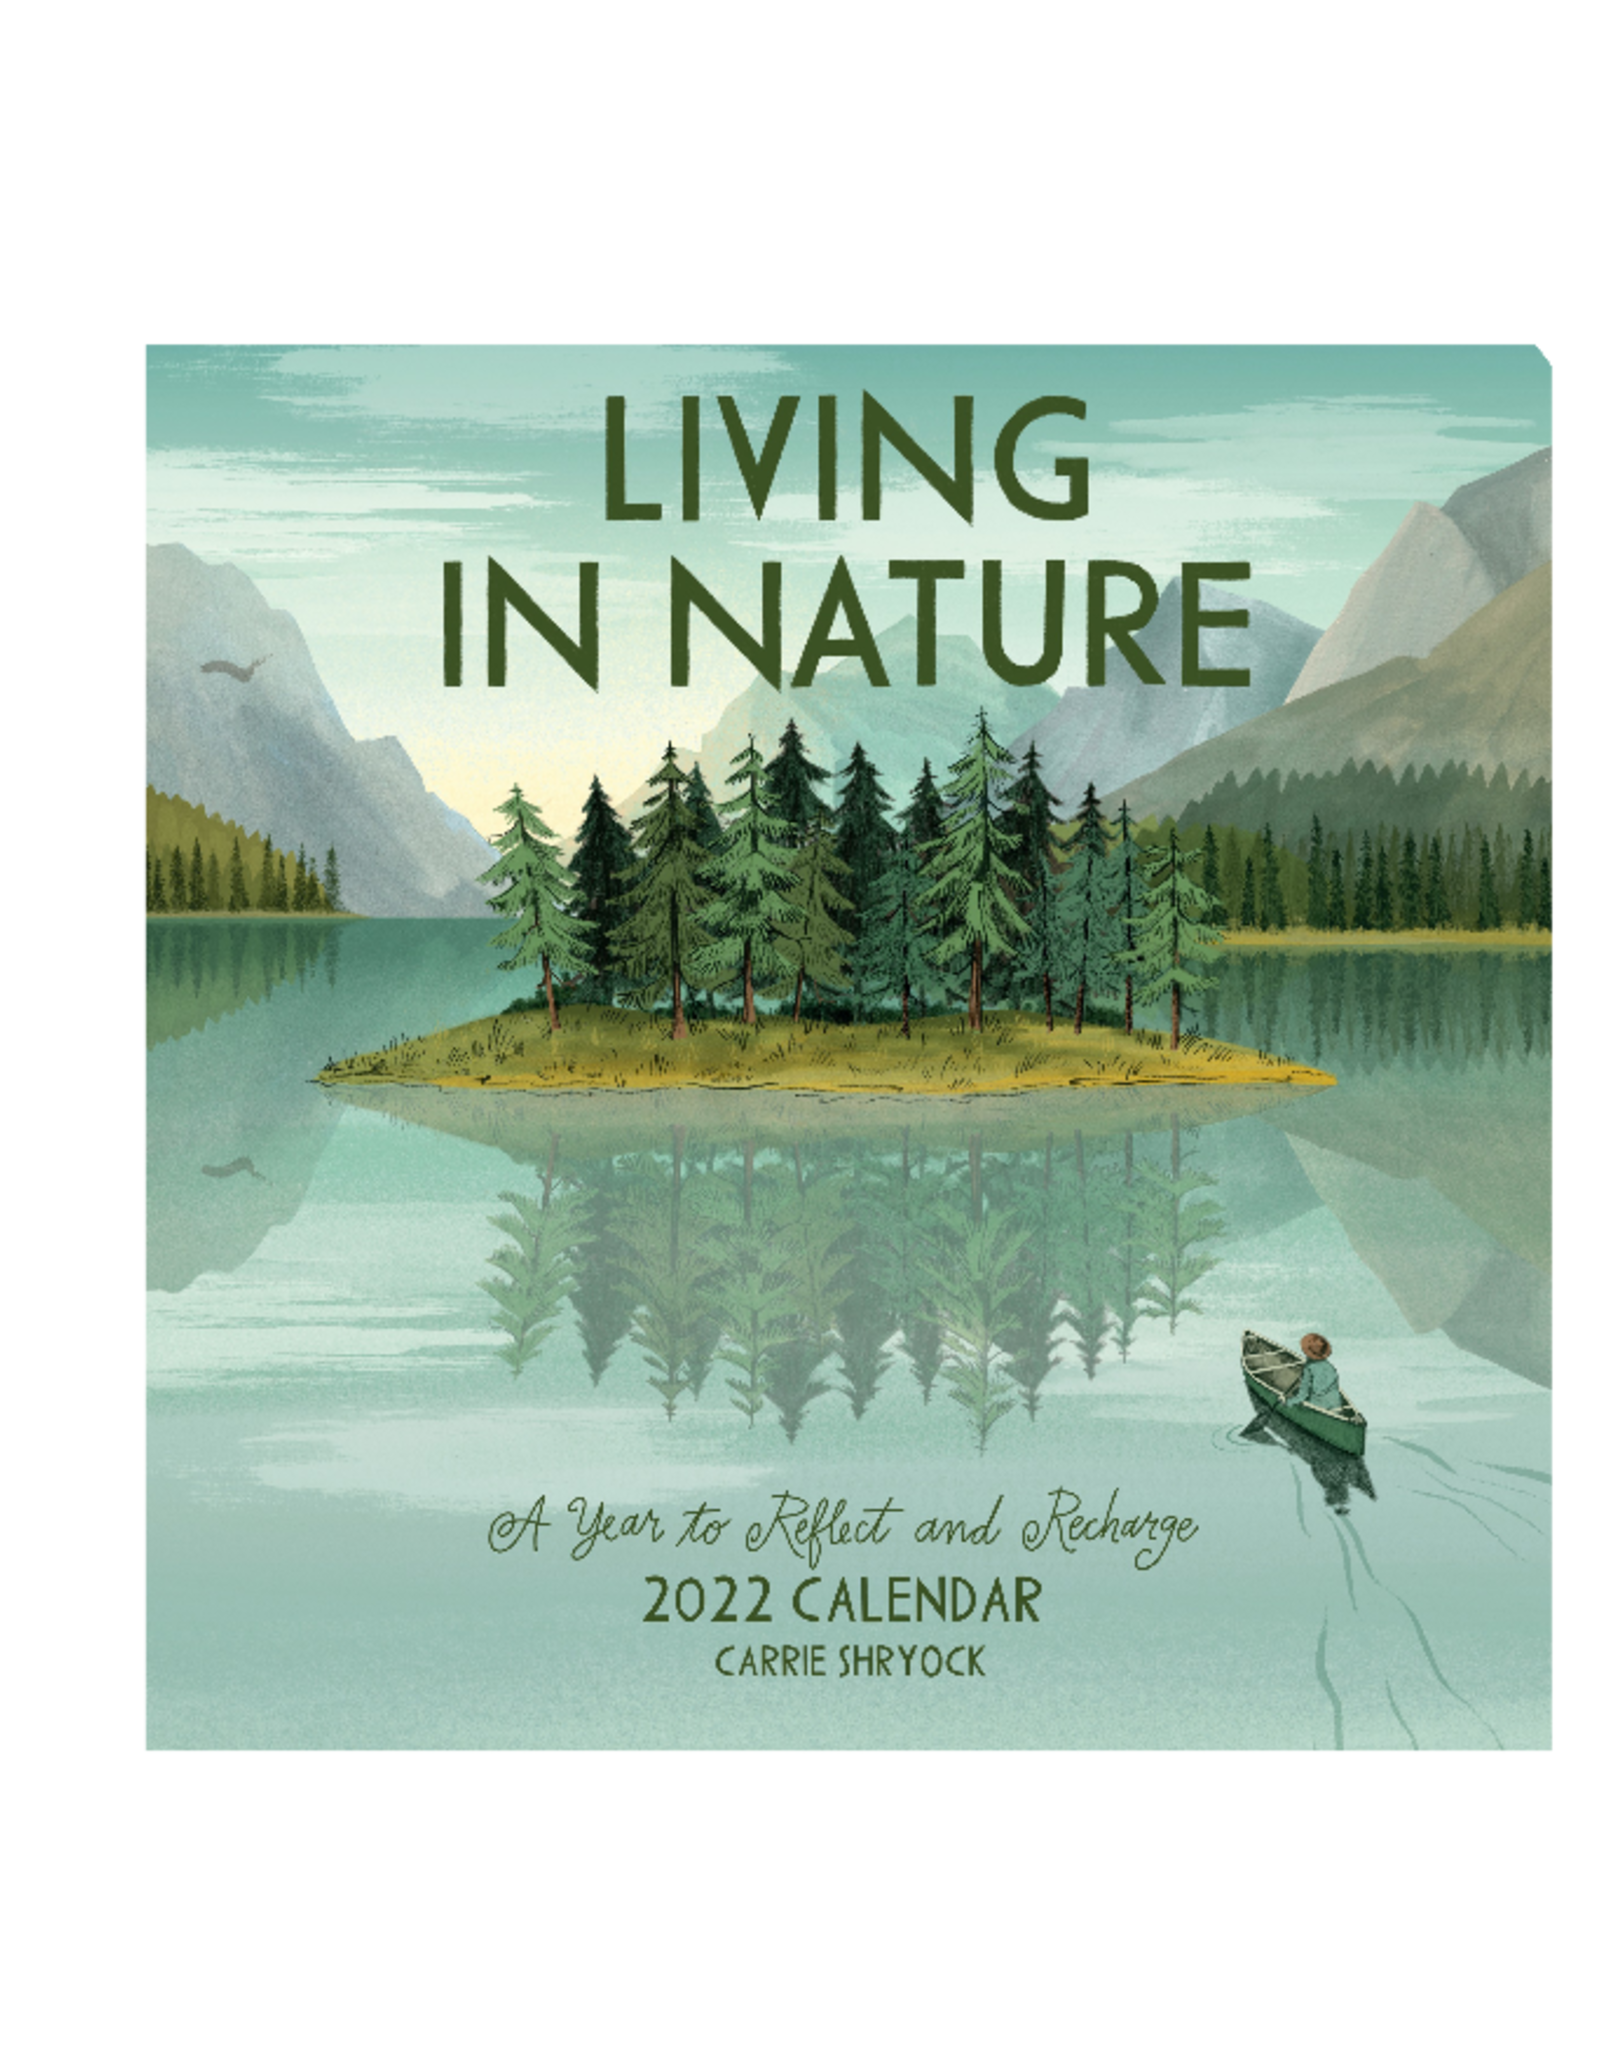 12-MONTH CALENDAR LIVING IN NATURE 2022